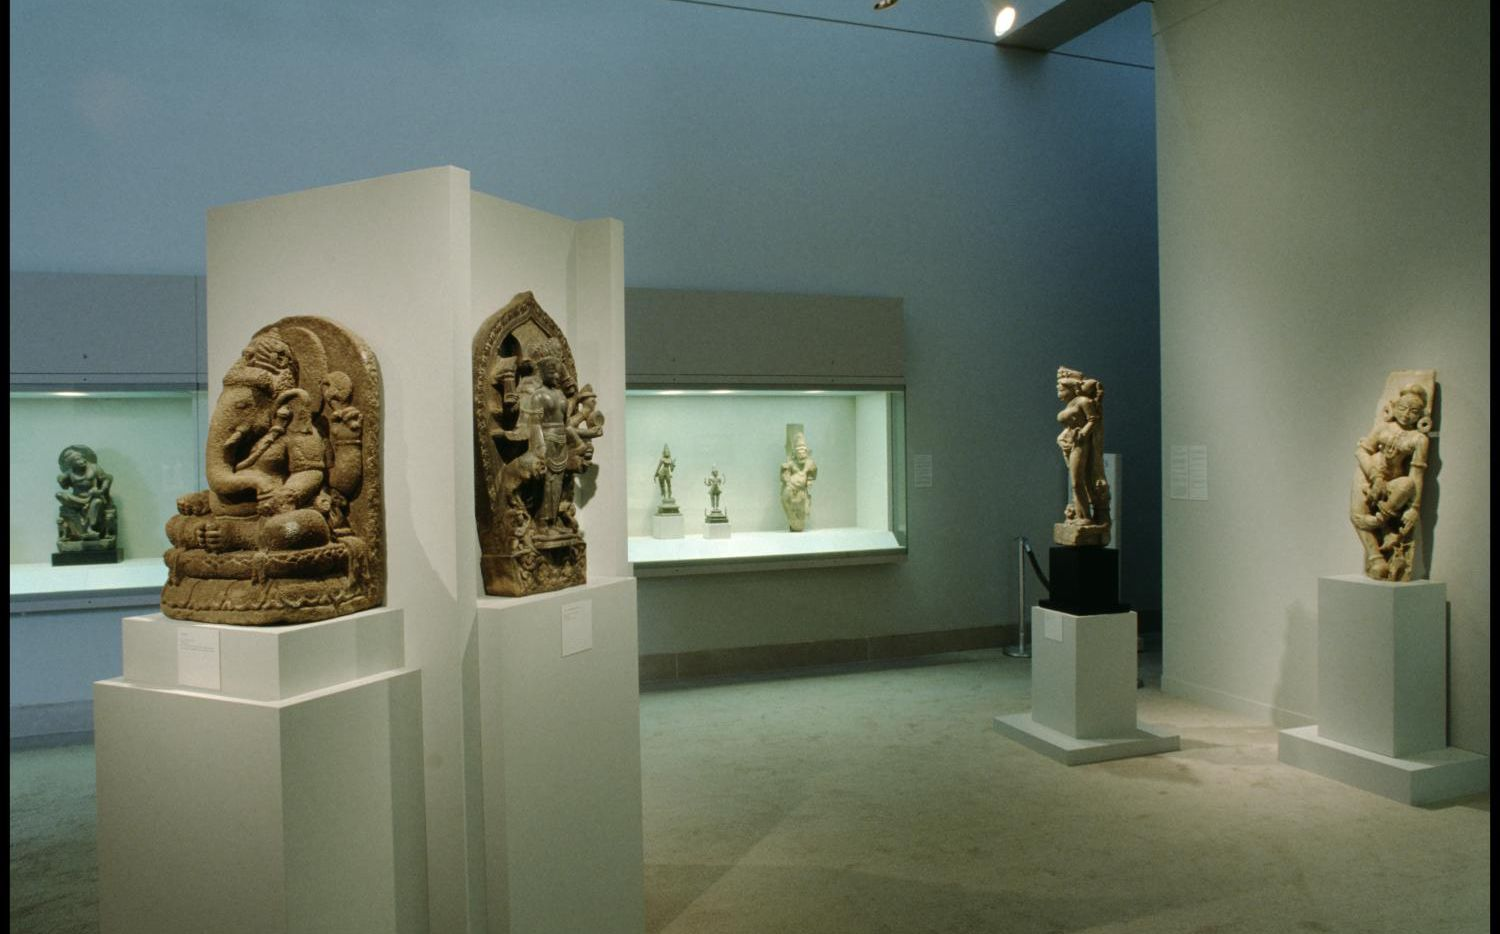 """A Lakshmi-Narayana stele from Nepal (foreground, center left) is shown on display in the exhibition """"East Meets West: Sculpture from the David T. Owsley Collection"""" from 1993 to 1994 at the Dallas Museum of Art. The DMA removed the stele from display in late 2019 in response to concerns about the provenance of the artwork."""